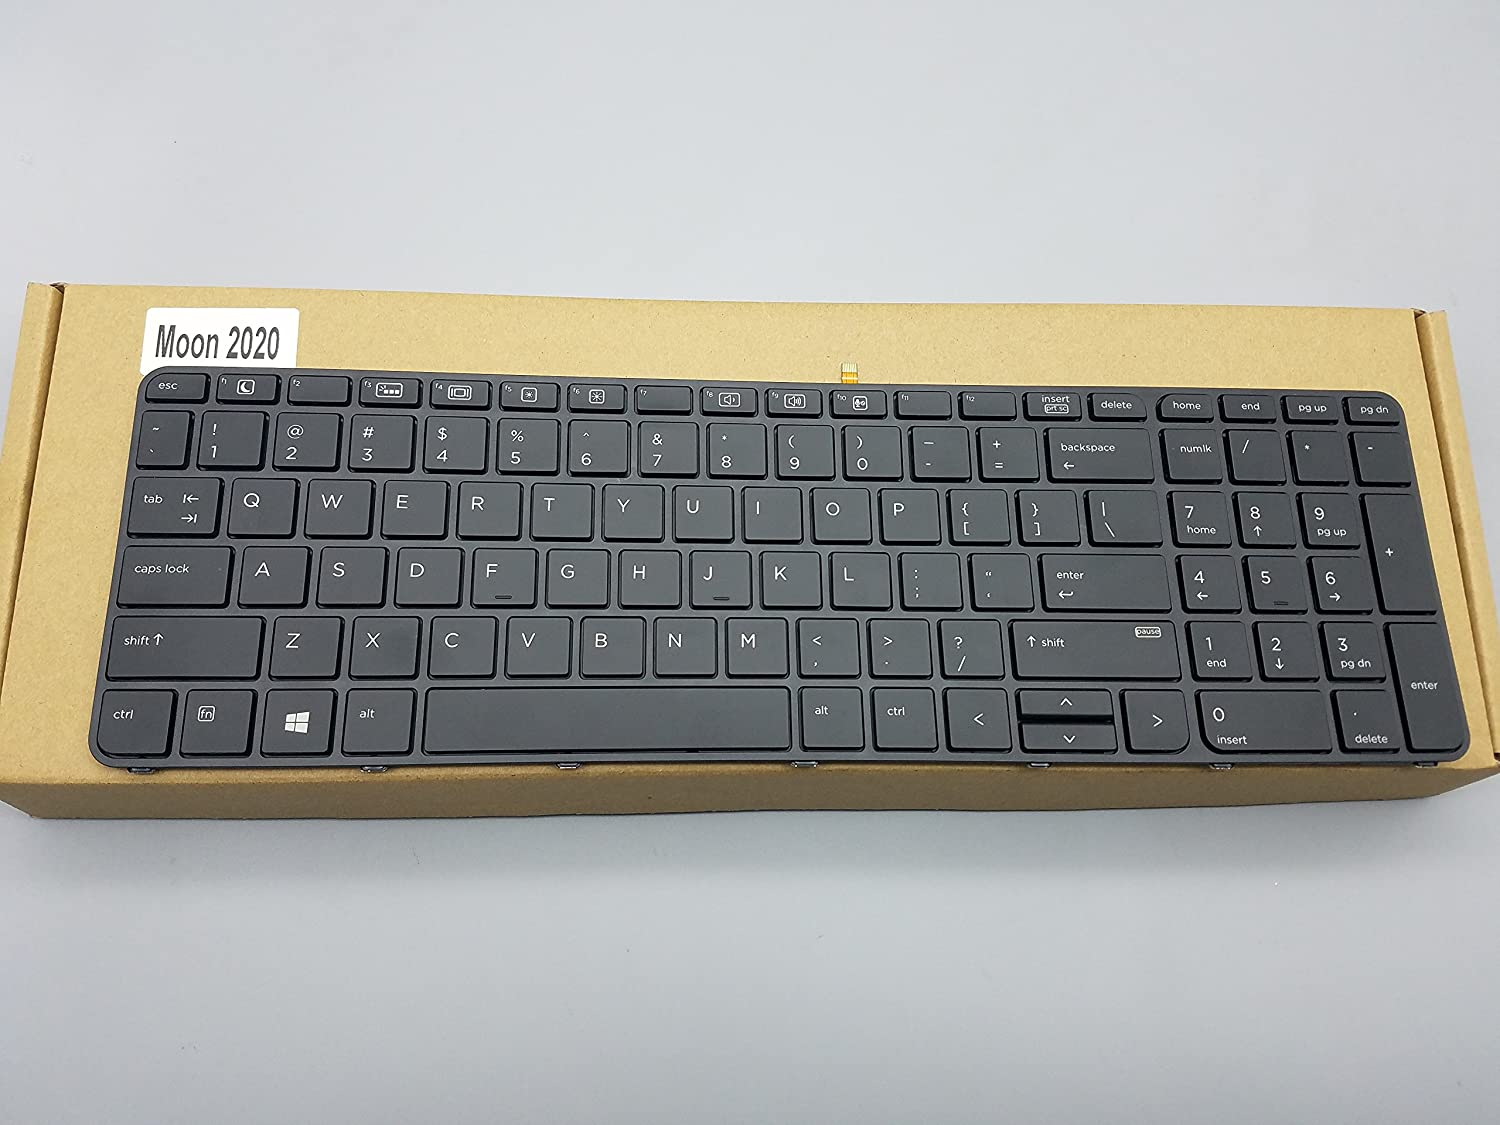 Replacement Keyboard for HP ProBook 450 G3 / 455 G3 / 470 G3 Laptop with Frame Backlight